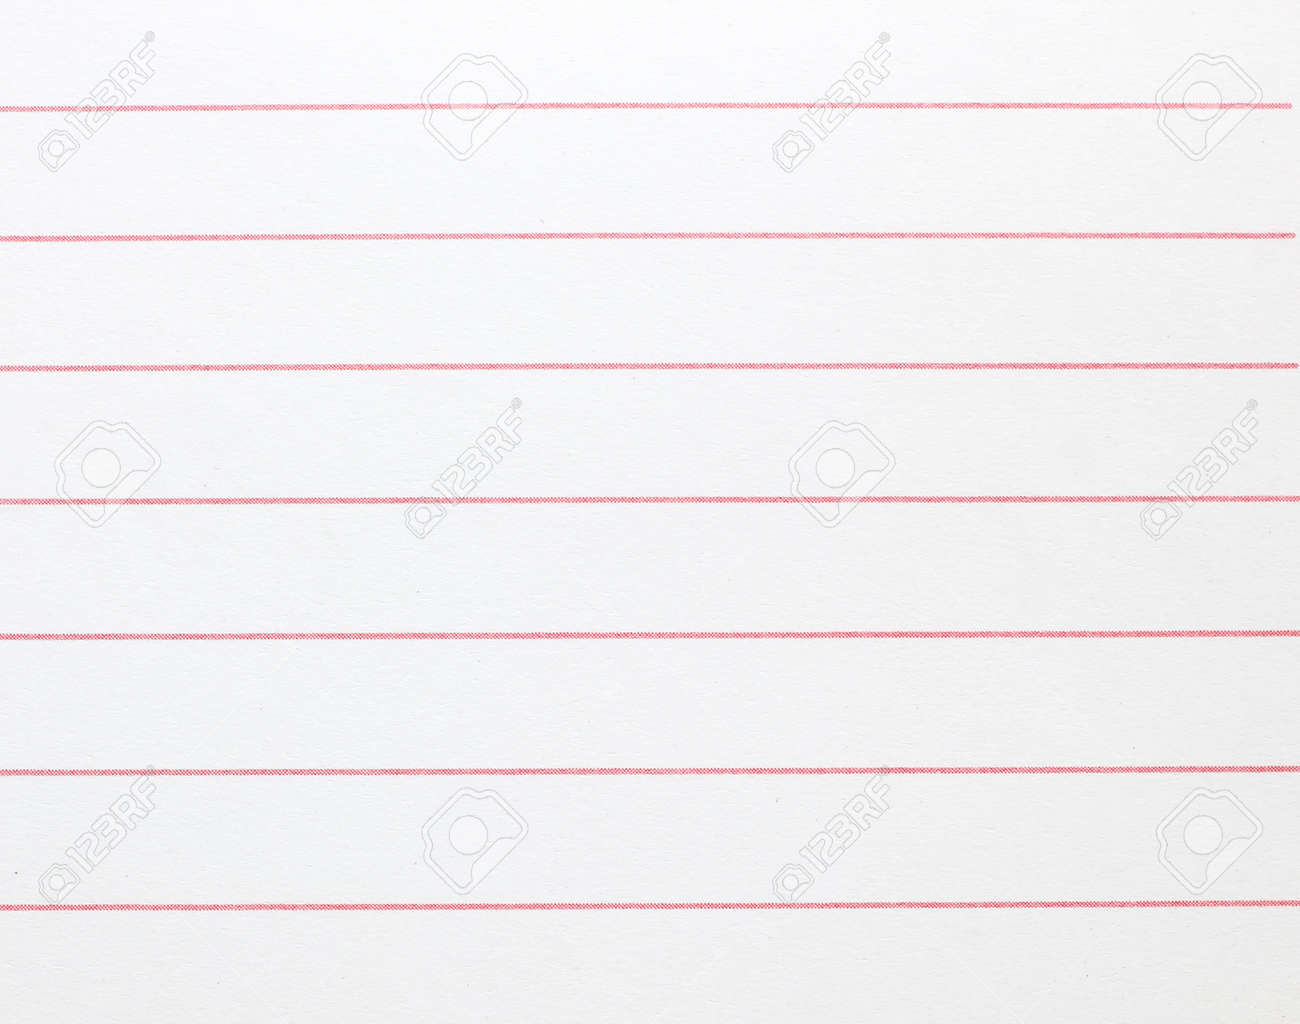 Blank Lined Notebook Paper Background Or Textured Stock Photo ...